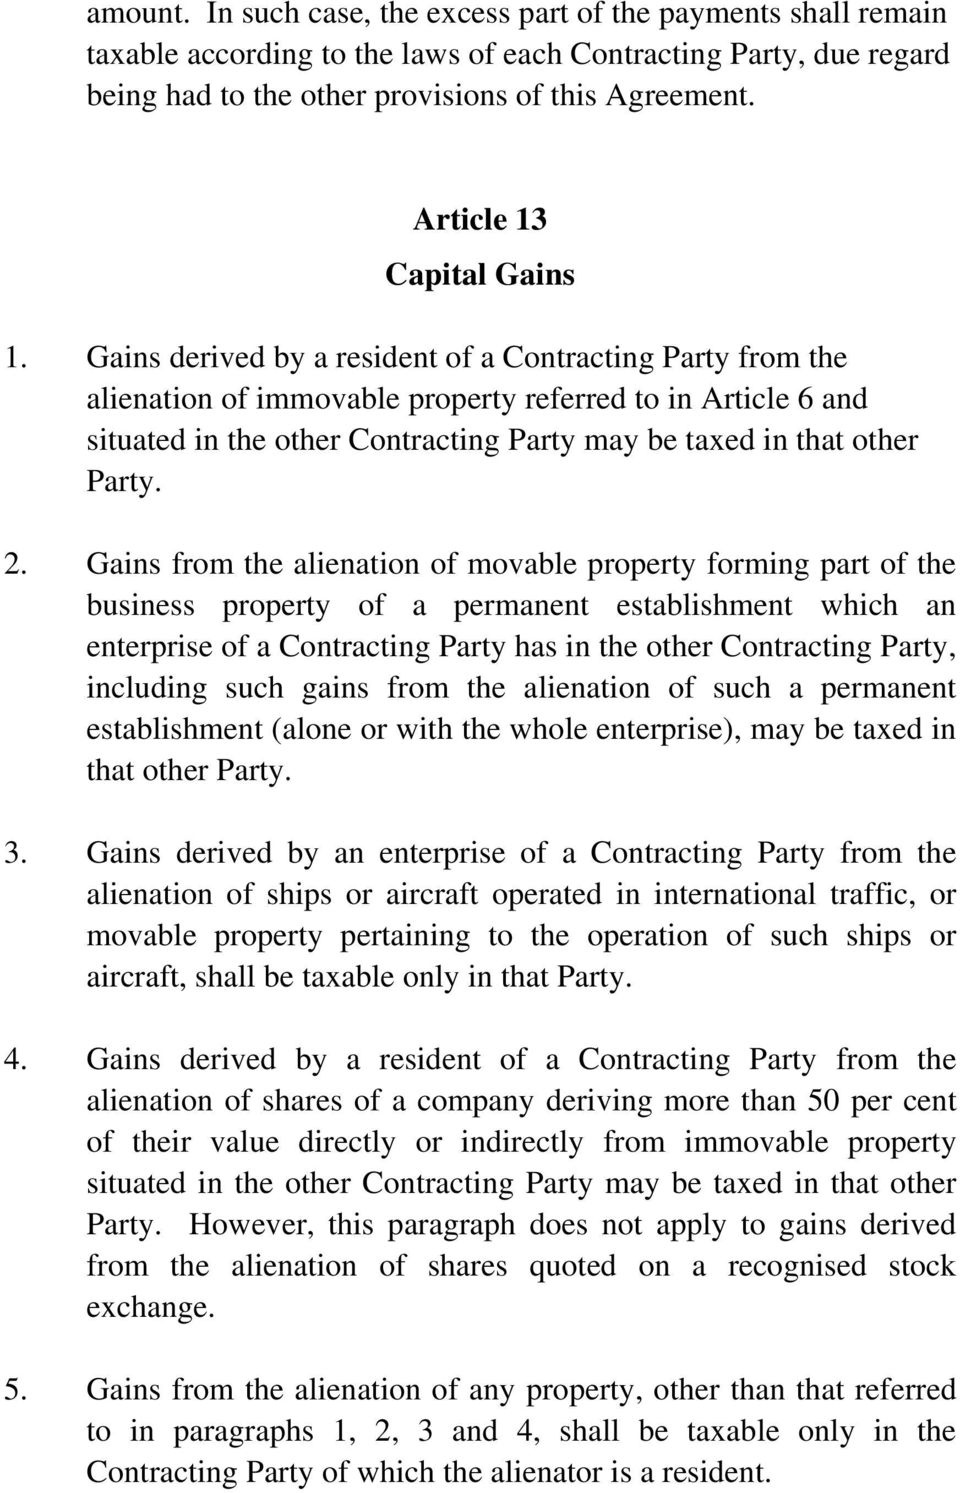 Gains derived by a resident of a Contracting Party from the alienation of immovable property referred to in Article 6 and situated in the other Contracting Party may be taxed in that other Party. 2.